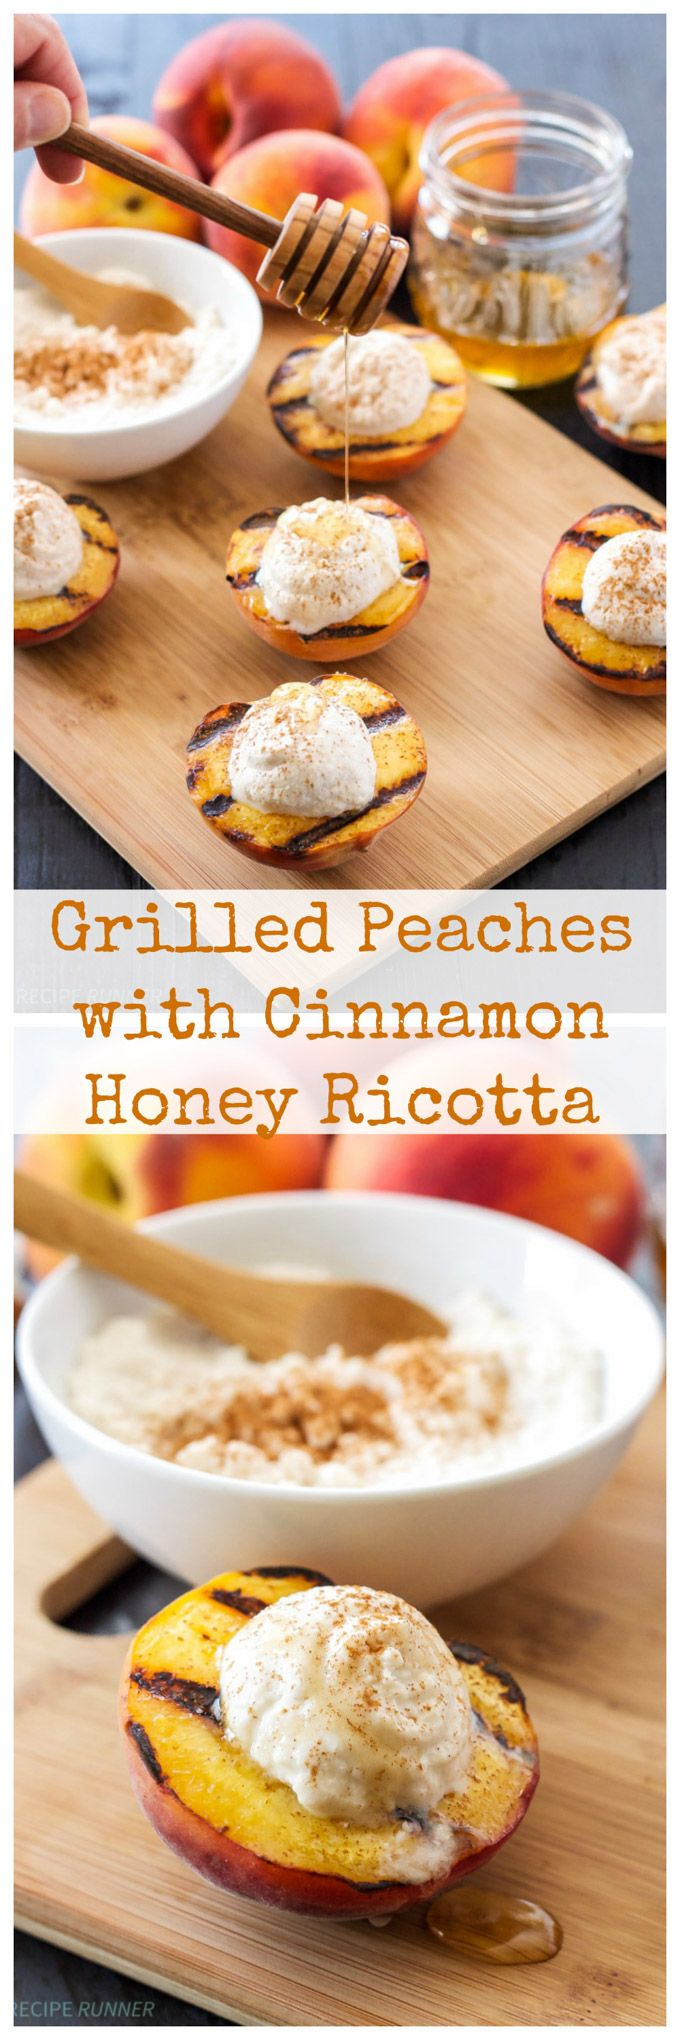 Grilled Peaches with Cinnamon Honey Ricotta ~ this light and not-too-sweet summer dessert takes only minutes to make and tastes so good!